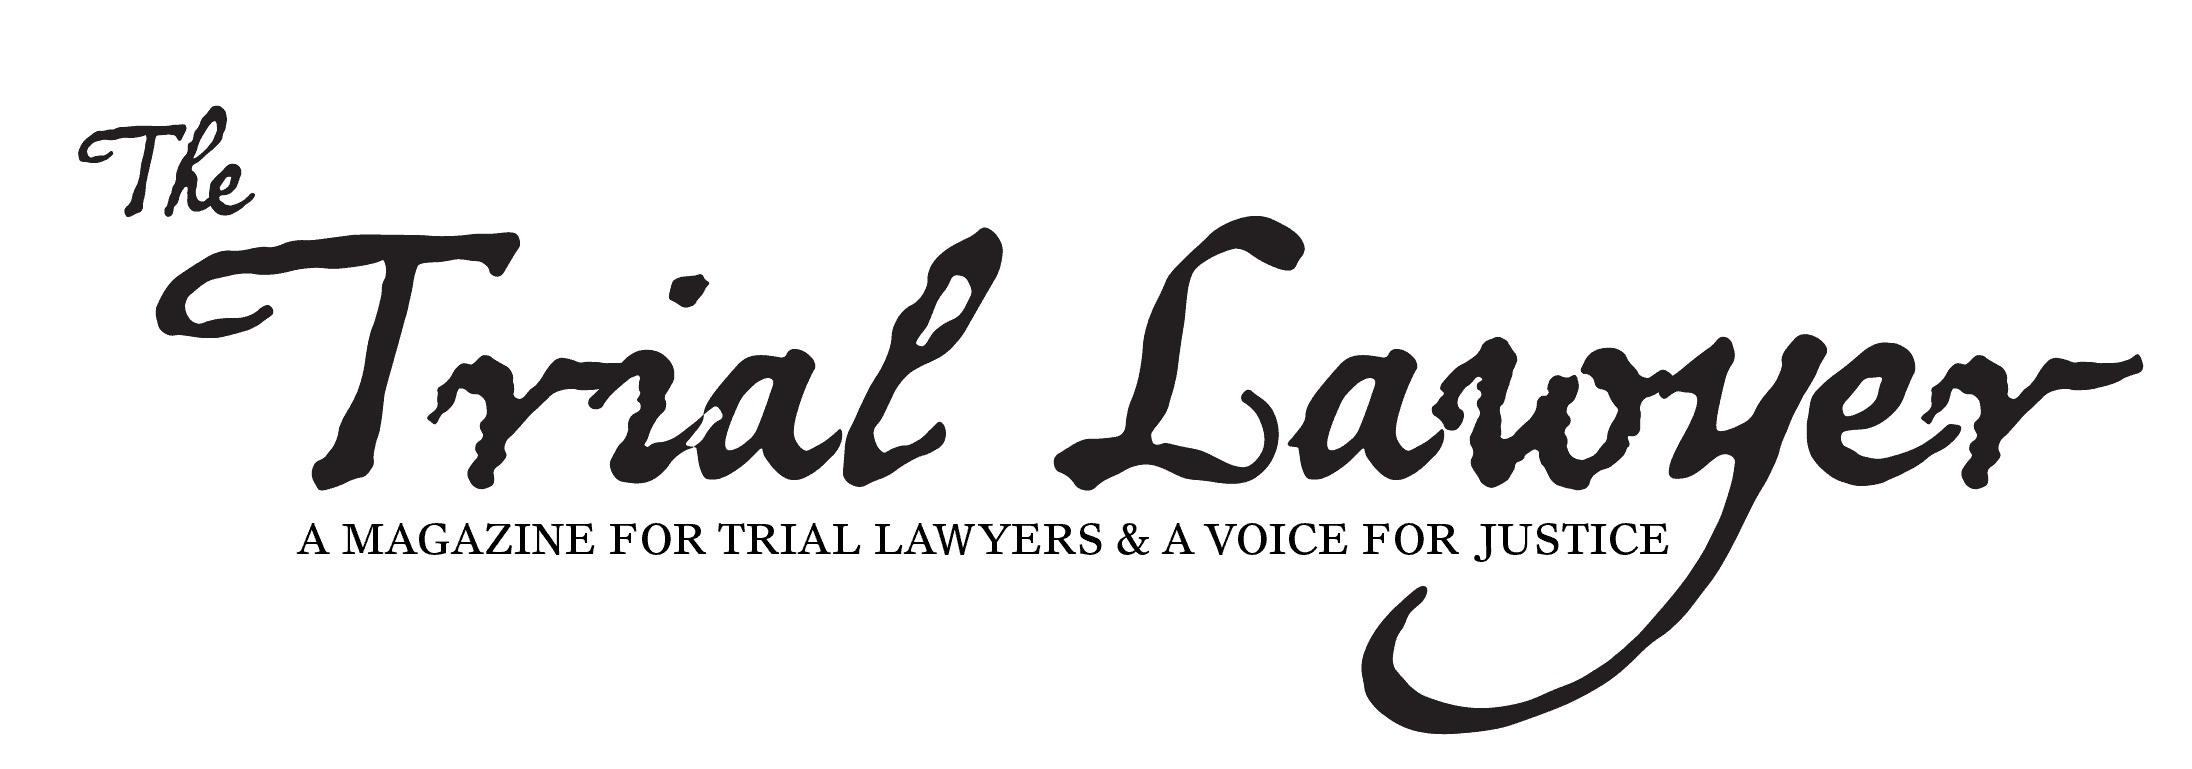 The Trial Lawyer Magazine Logo